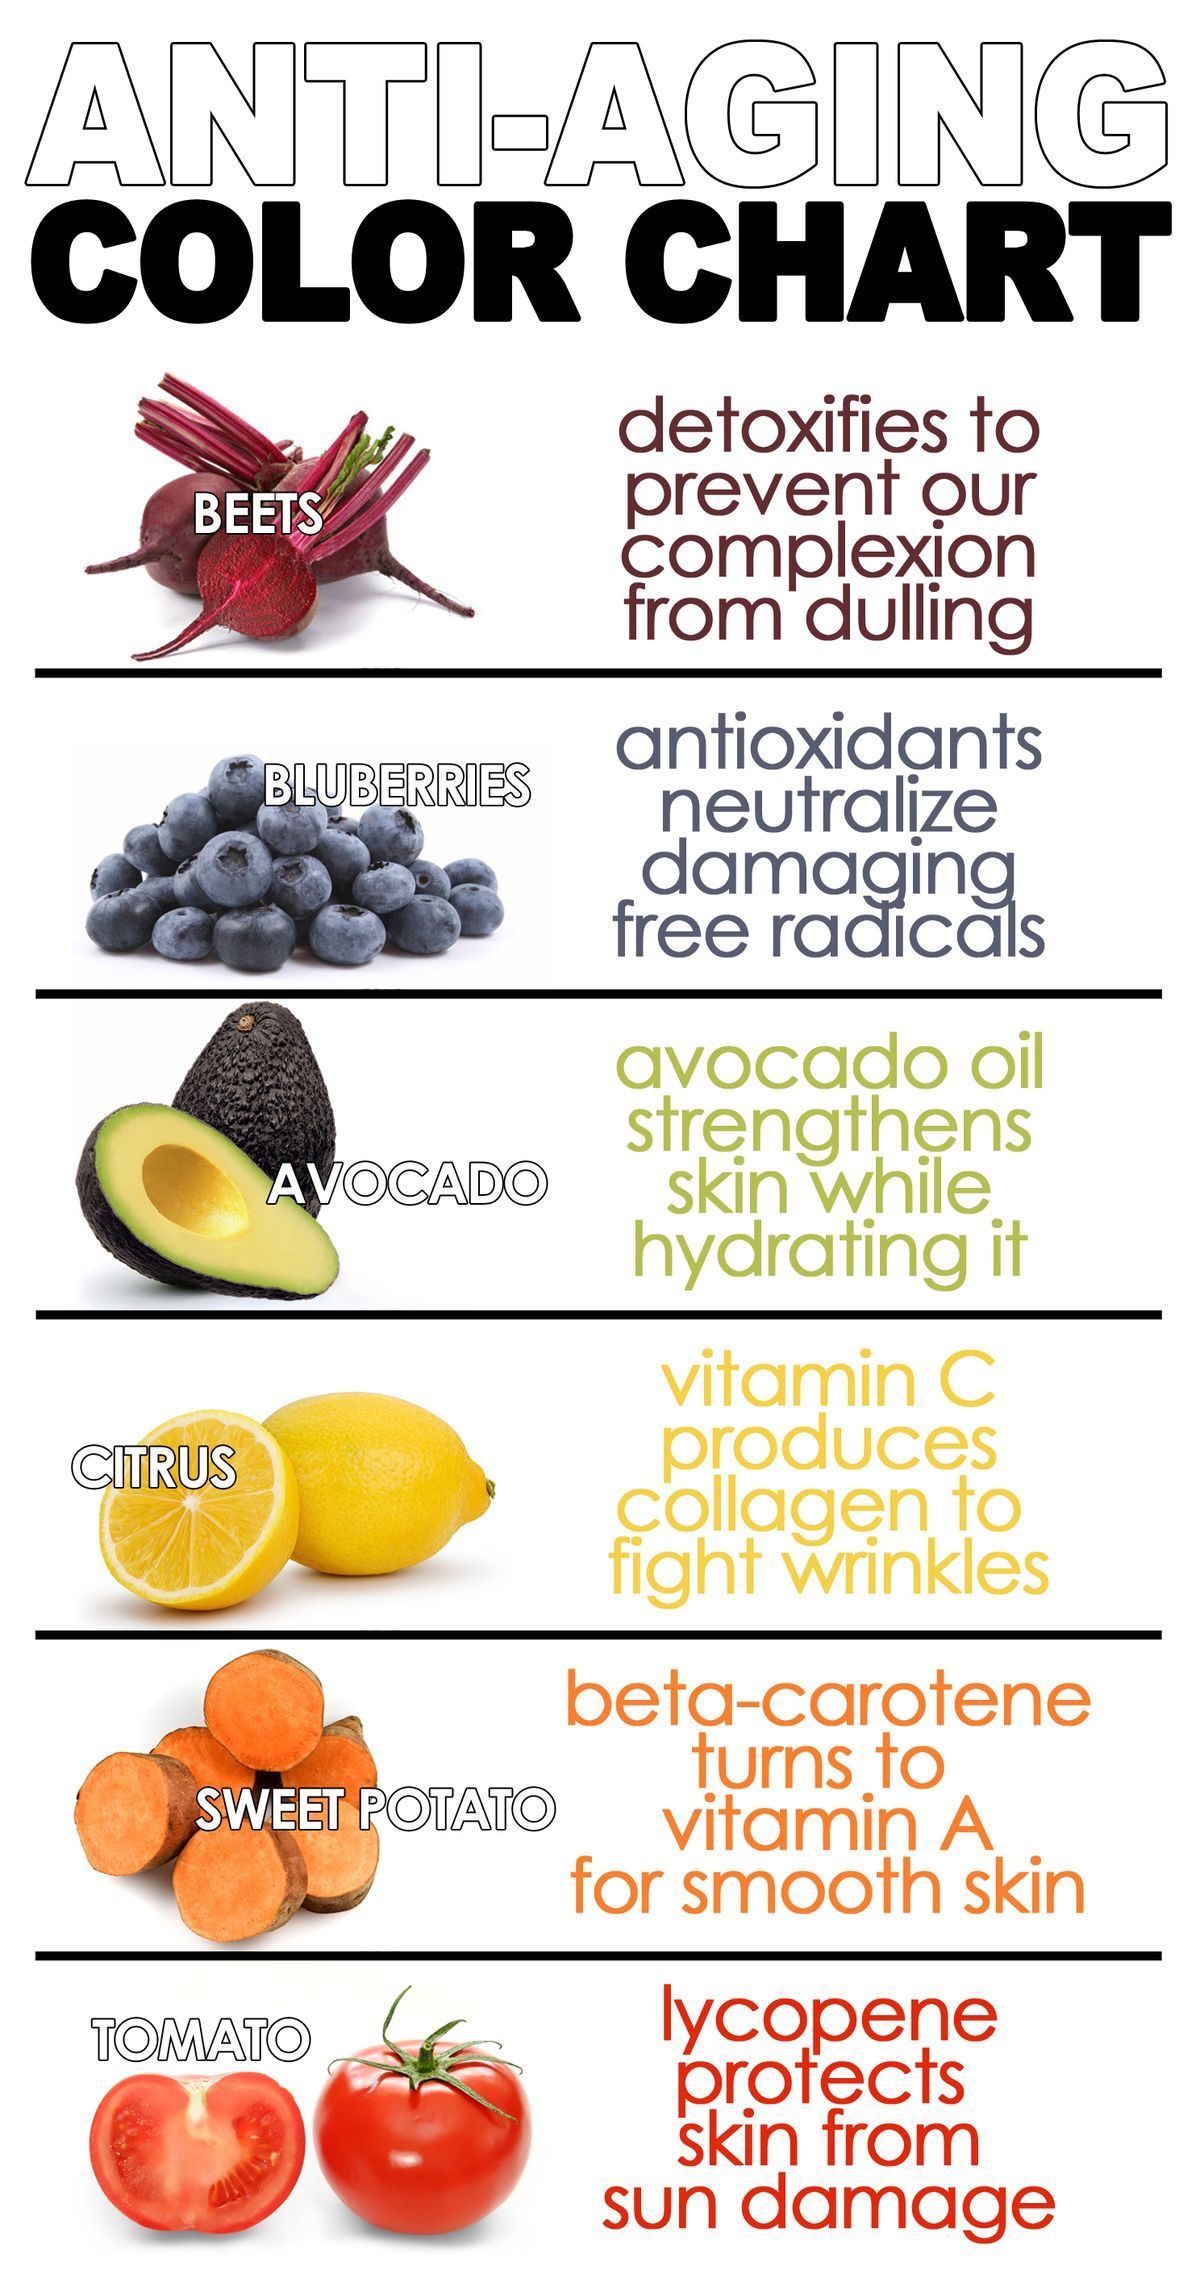 Anti aging color chart anti aging tips tricks pinterest anti aging color chart nvjuhfo Gallery